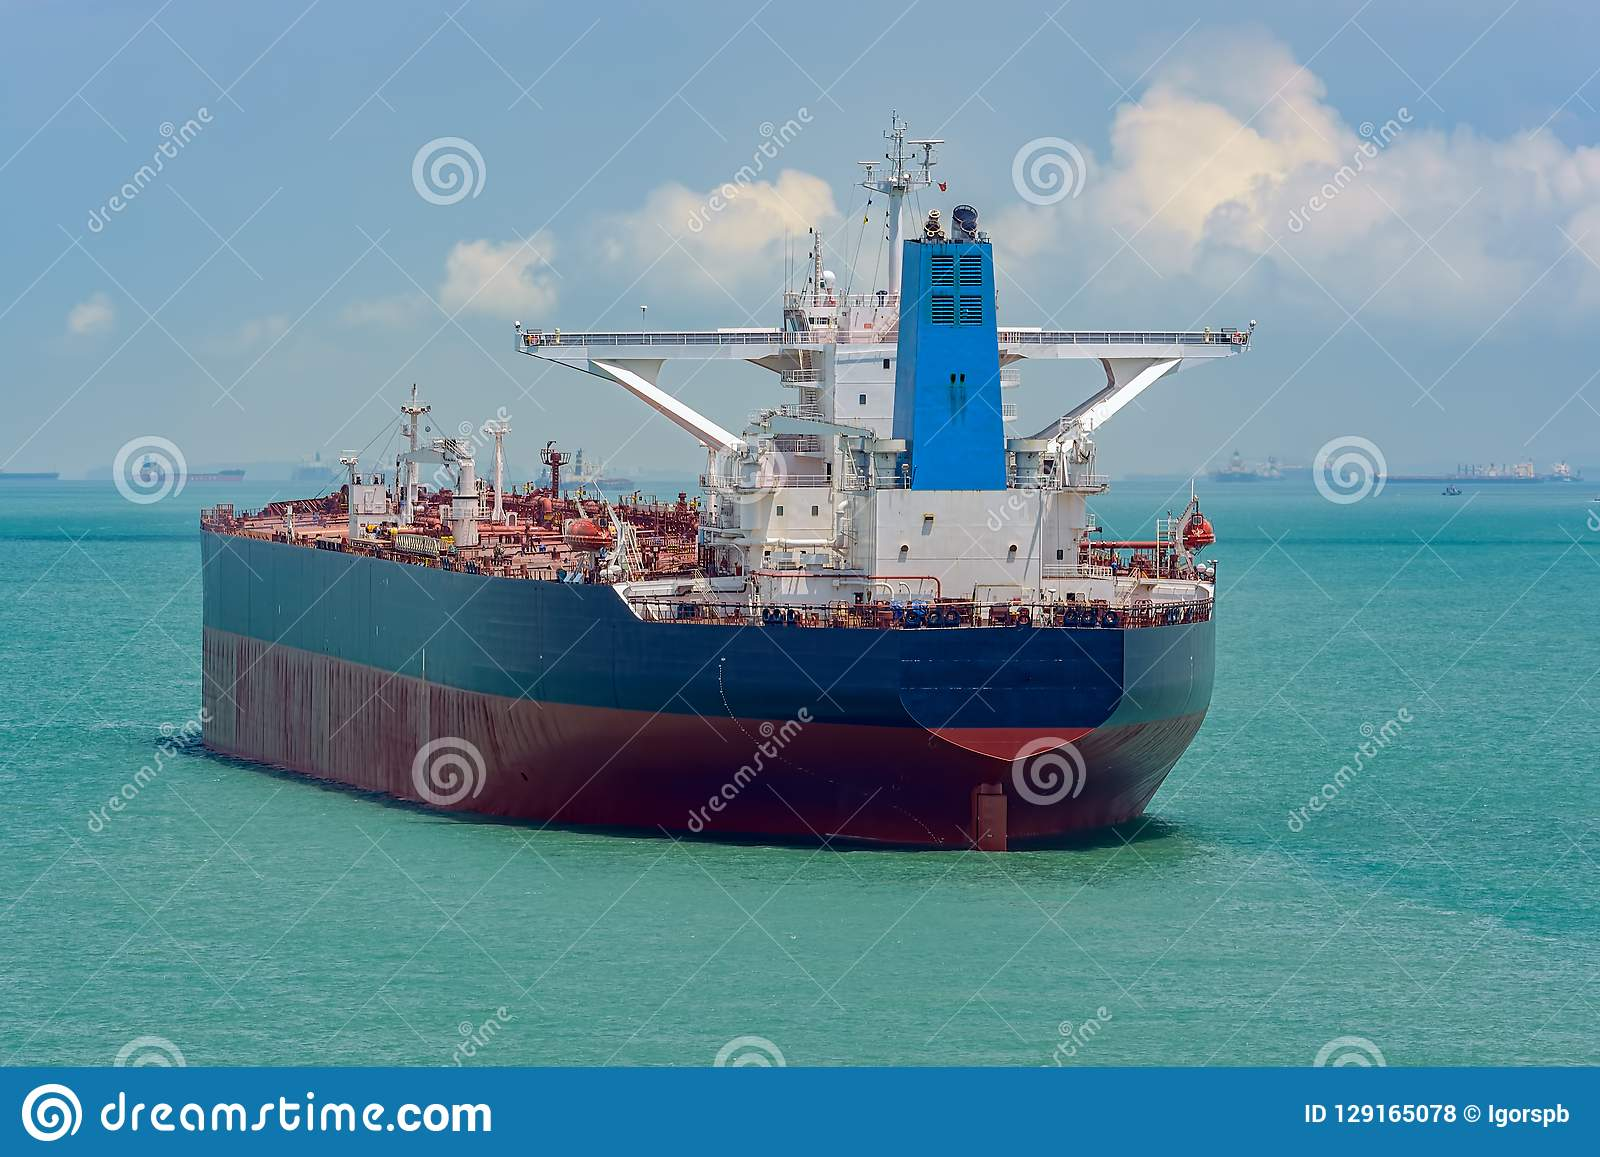 Crude Oil Tanker In Singapore Strait Stock Photo - Image of boat